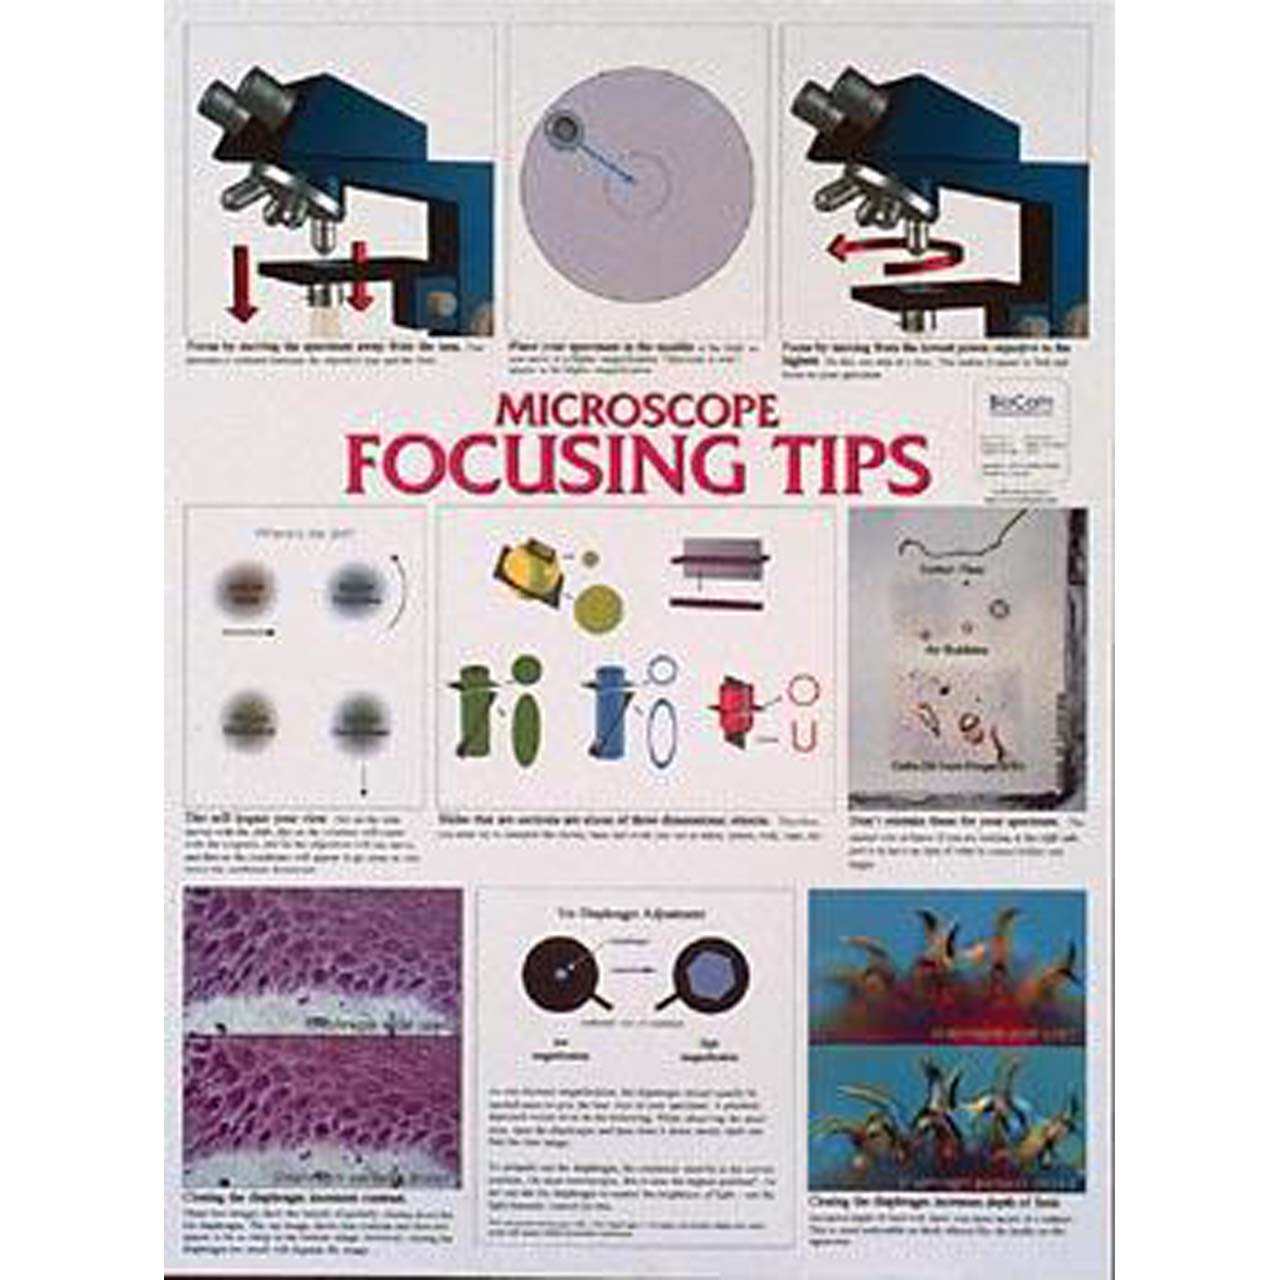 WC03 - Microscope focusing tips, Chart